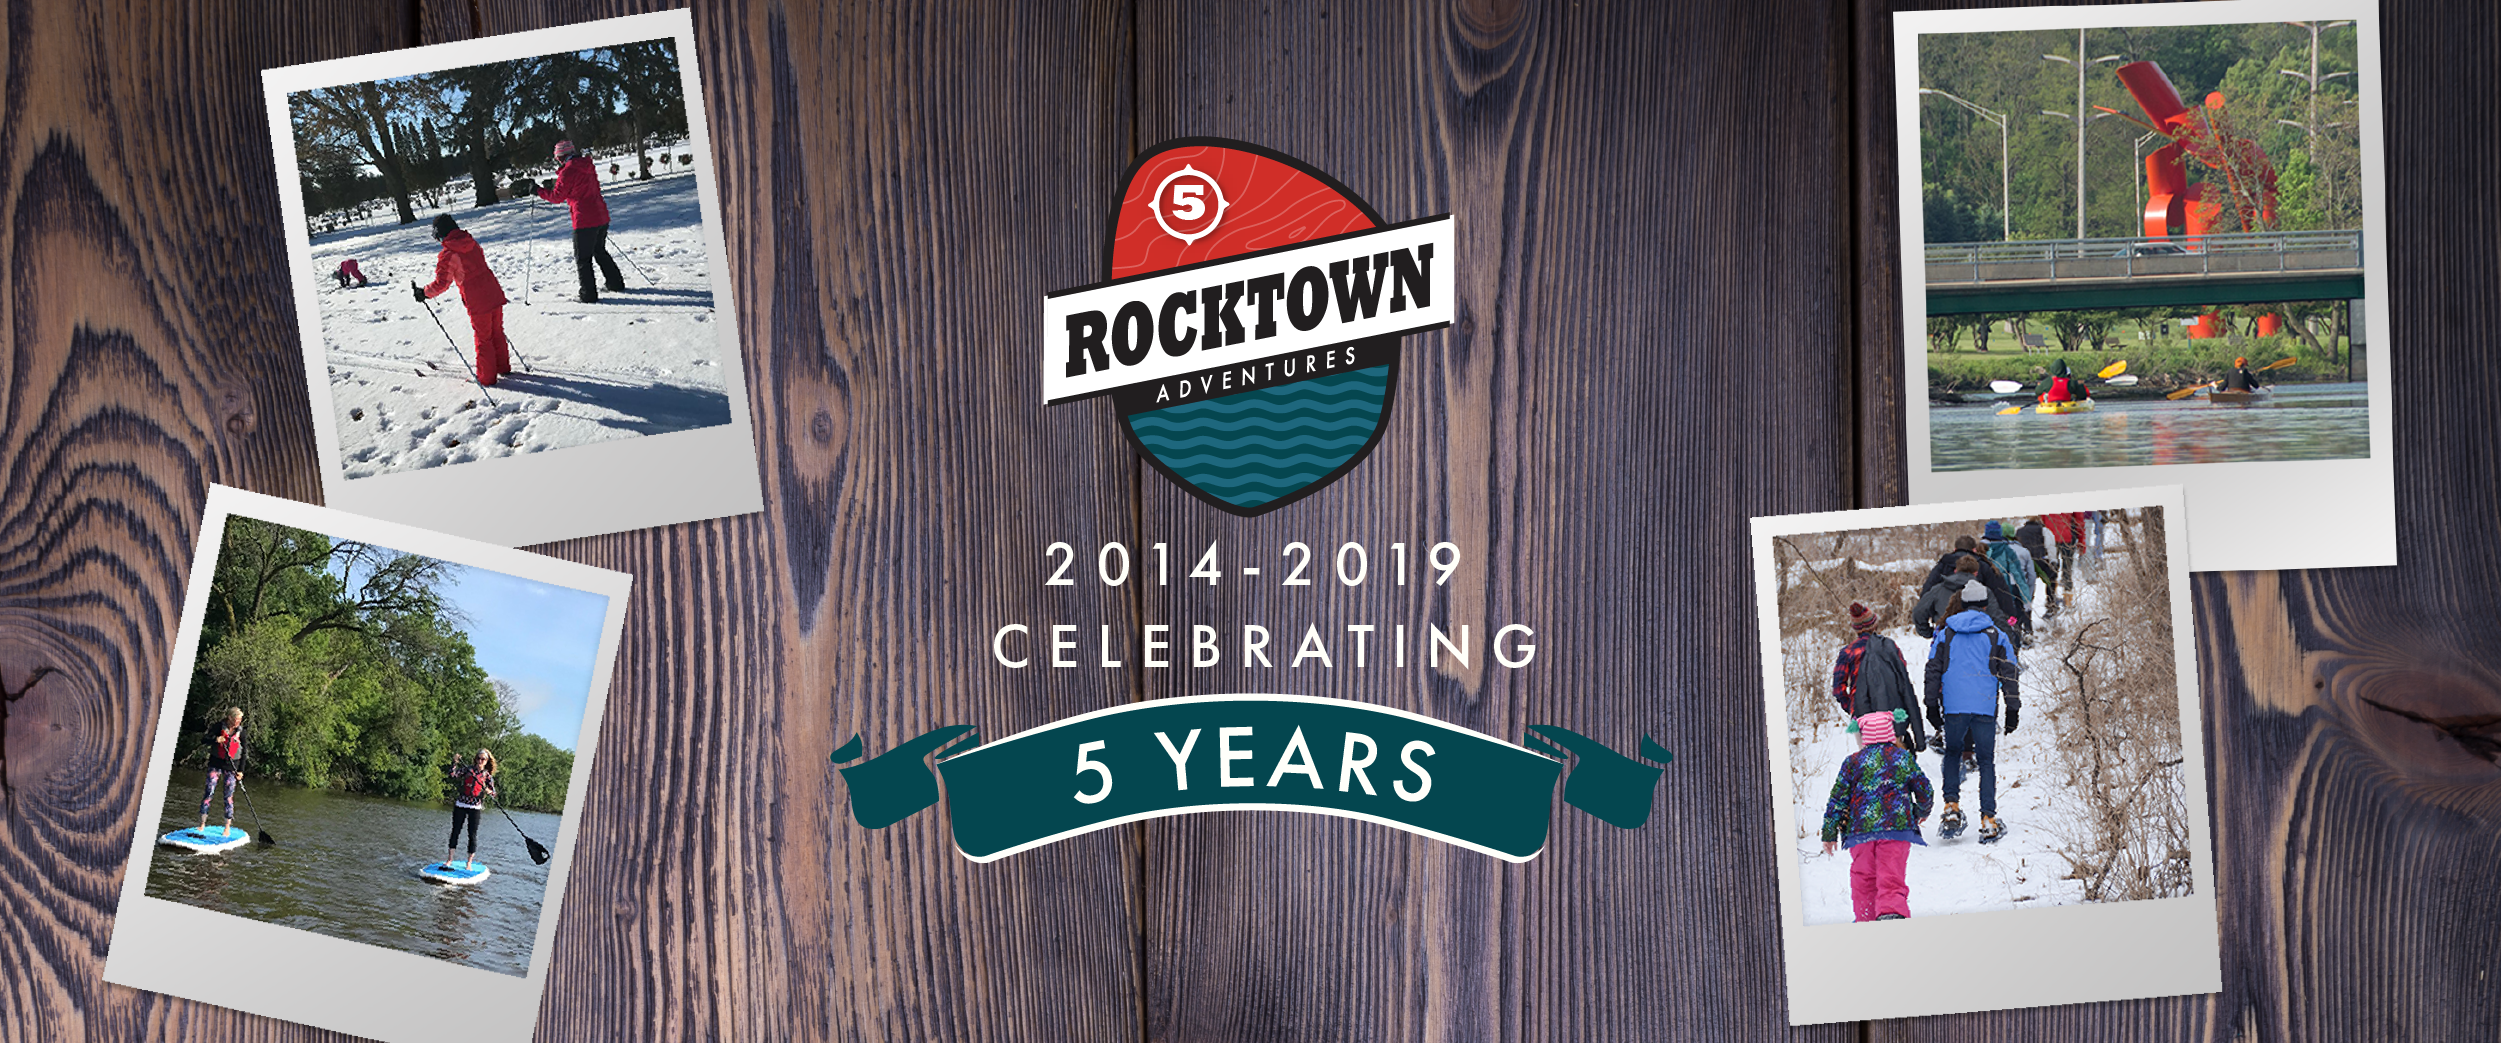 Celebrating 5 Years! | Rocktown Adventures